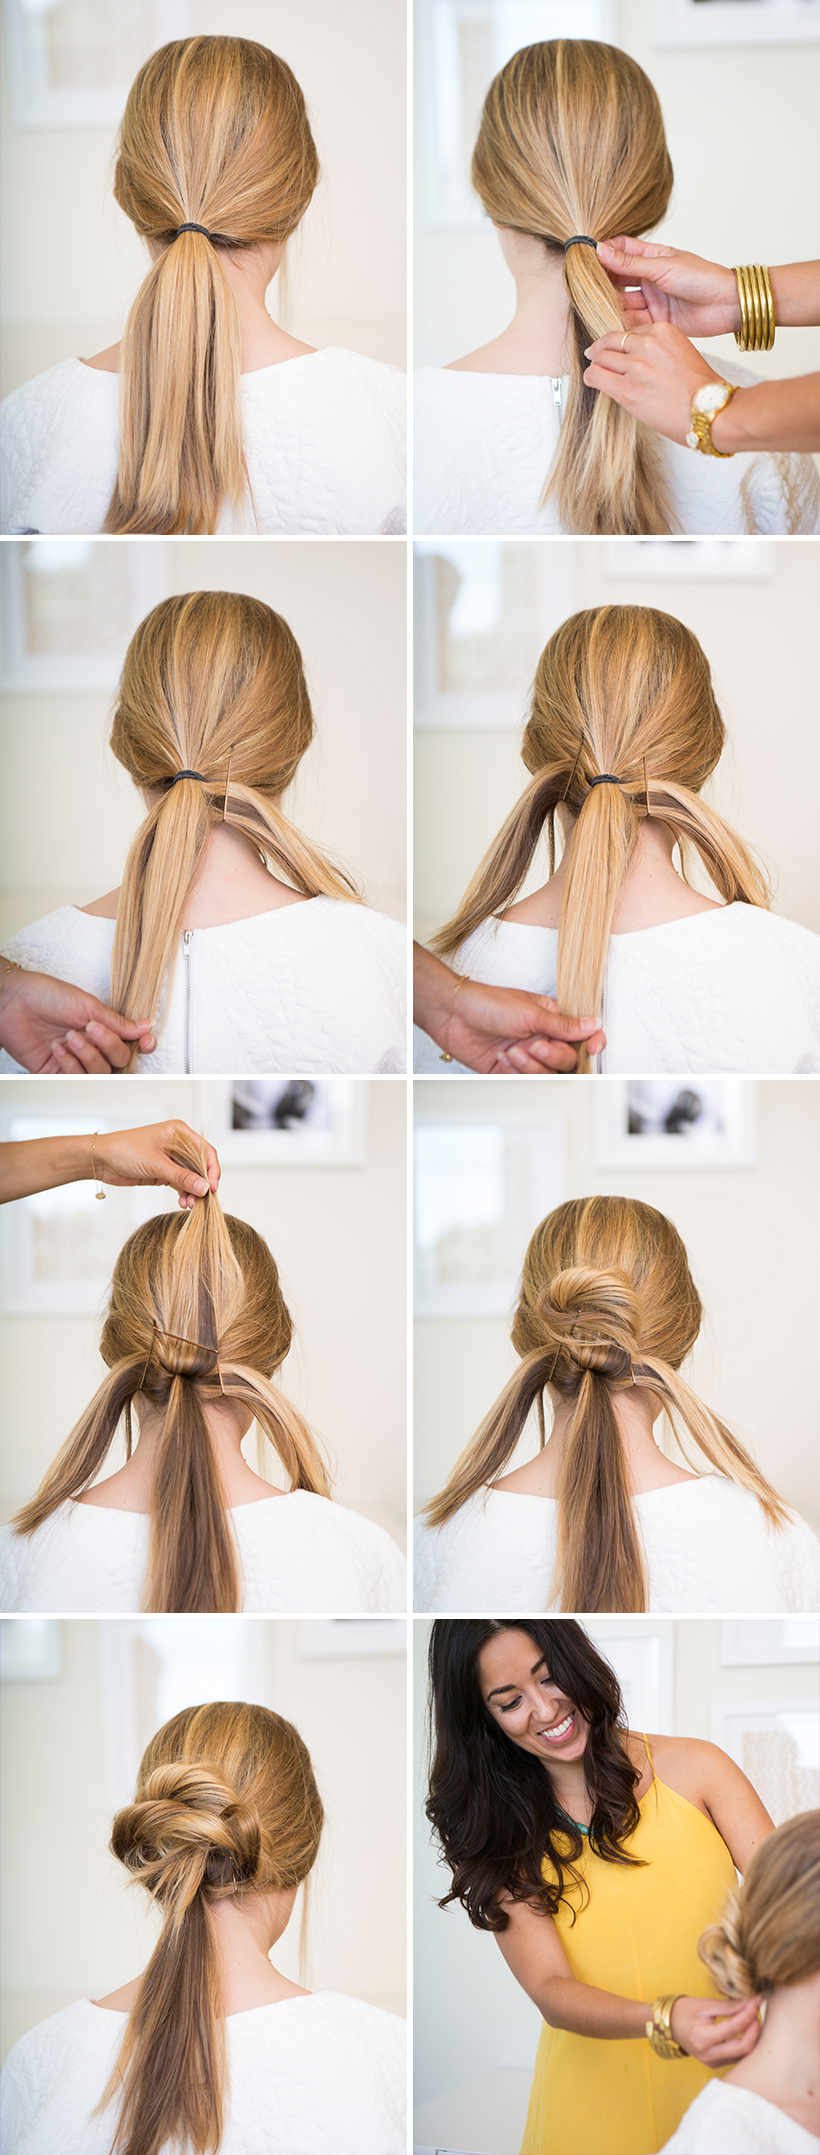 How to: Loose Low Bun